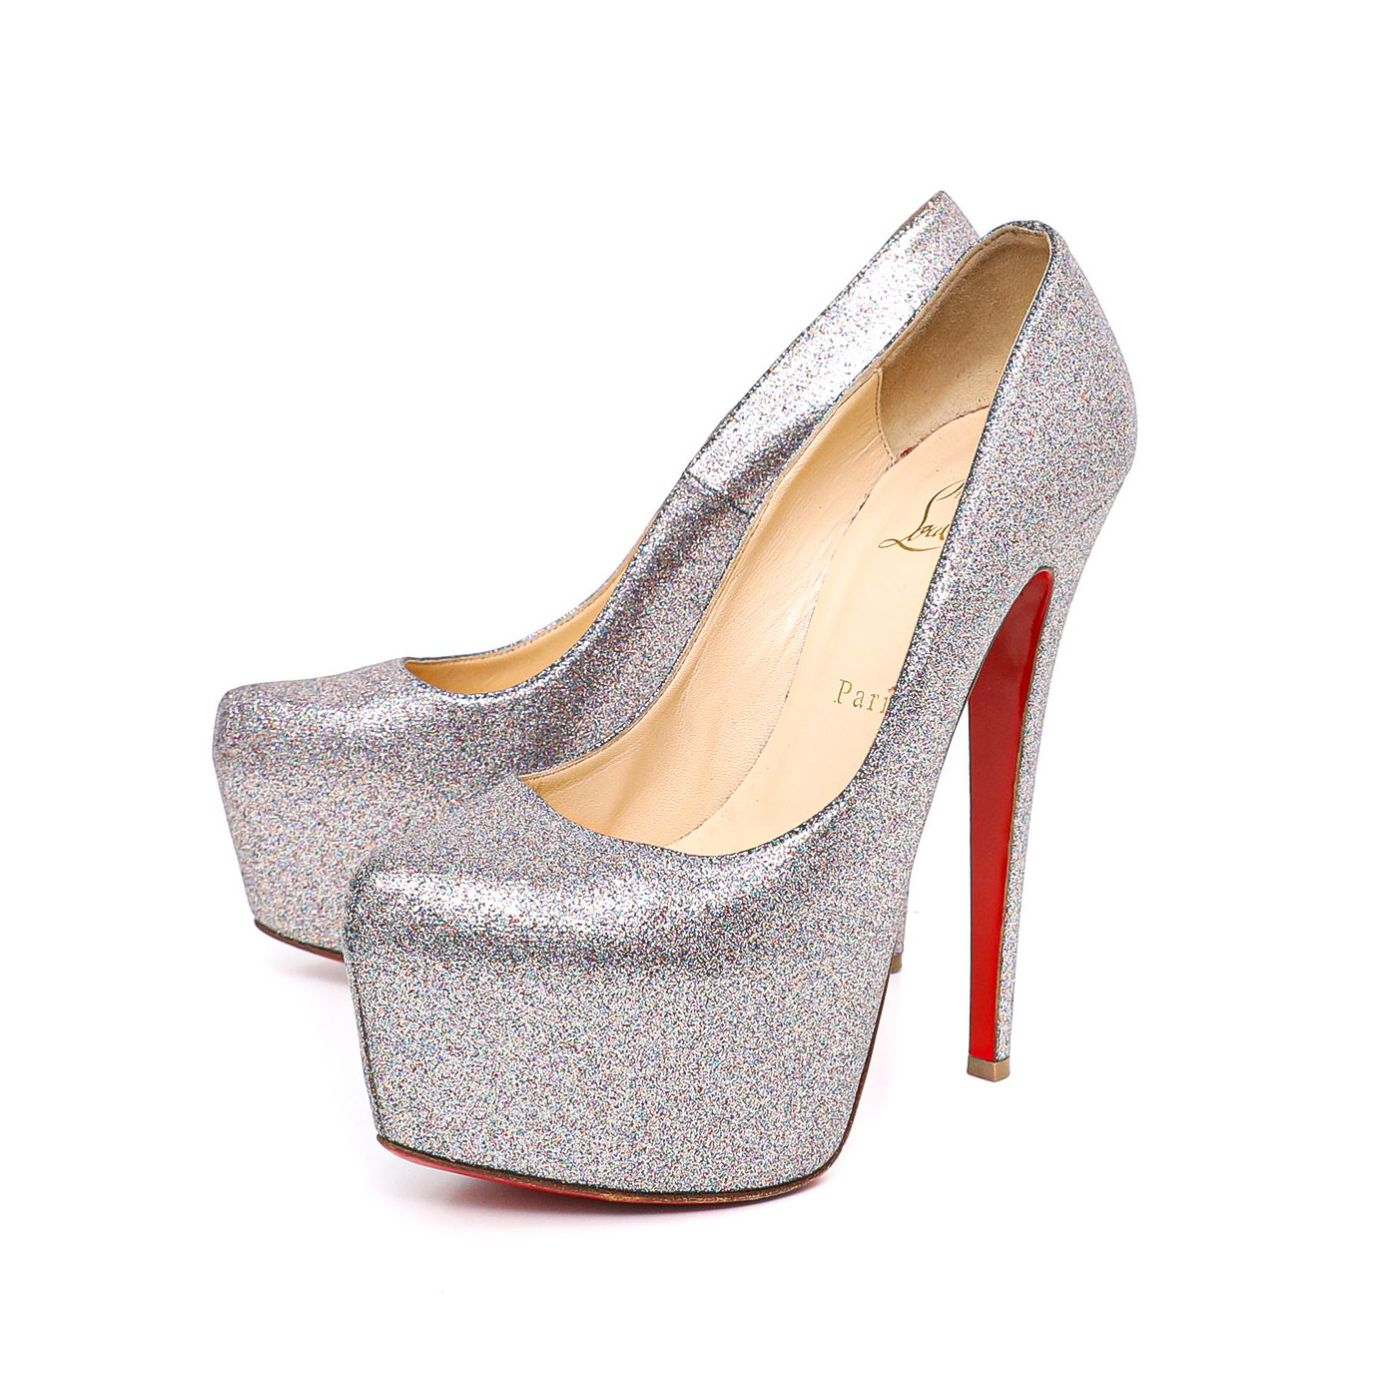 Christian Louboutin Glitter Daffodile 150mm Pumps 38.5